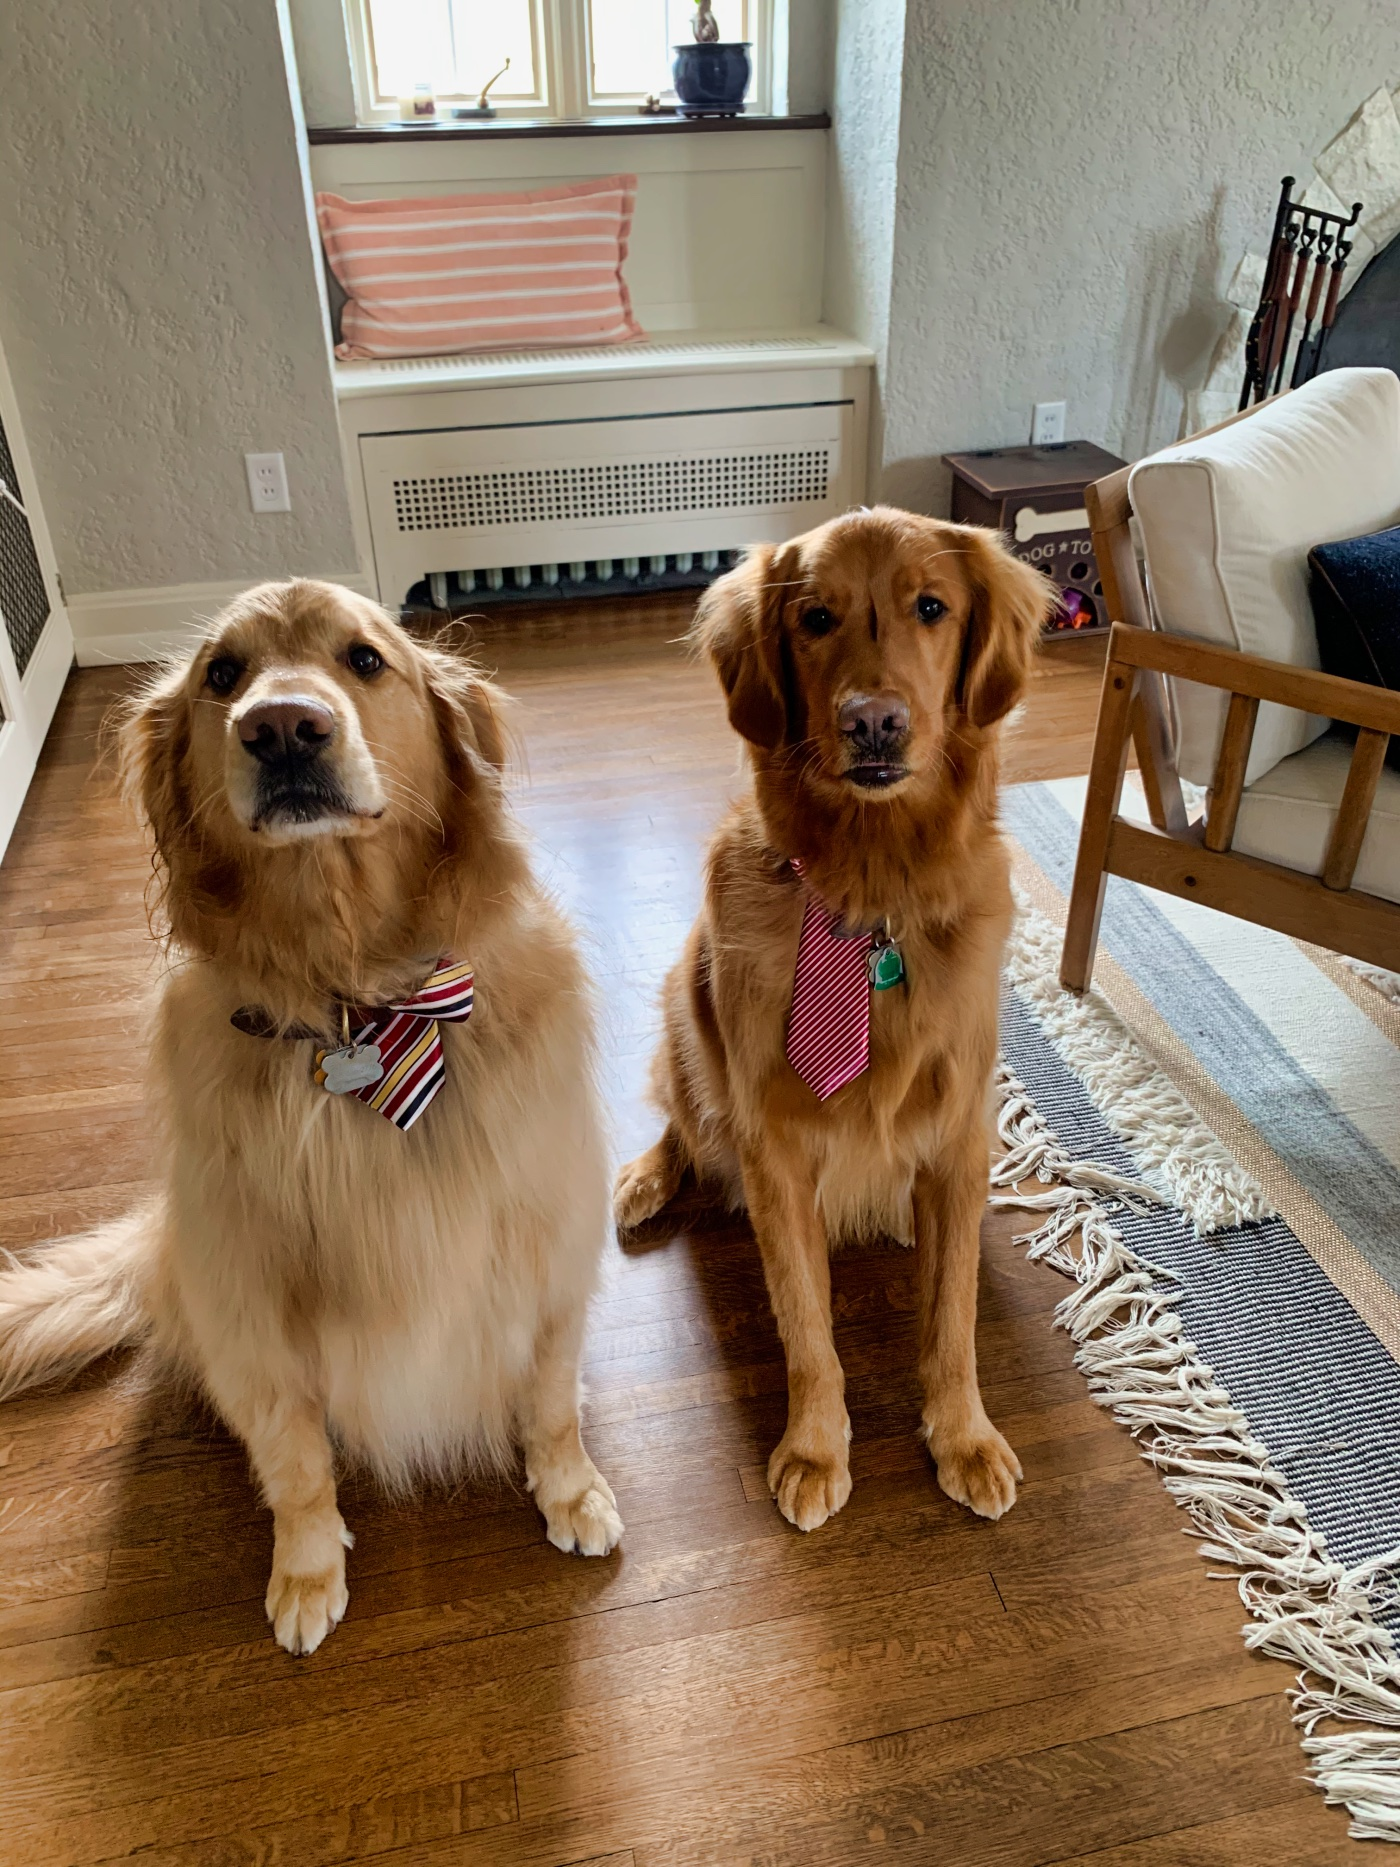 Two golden retrievers sitting